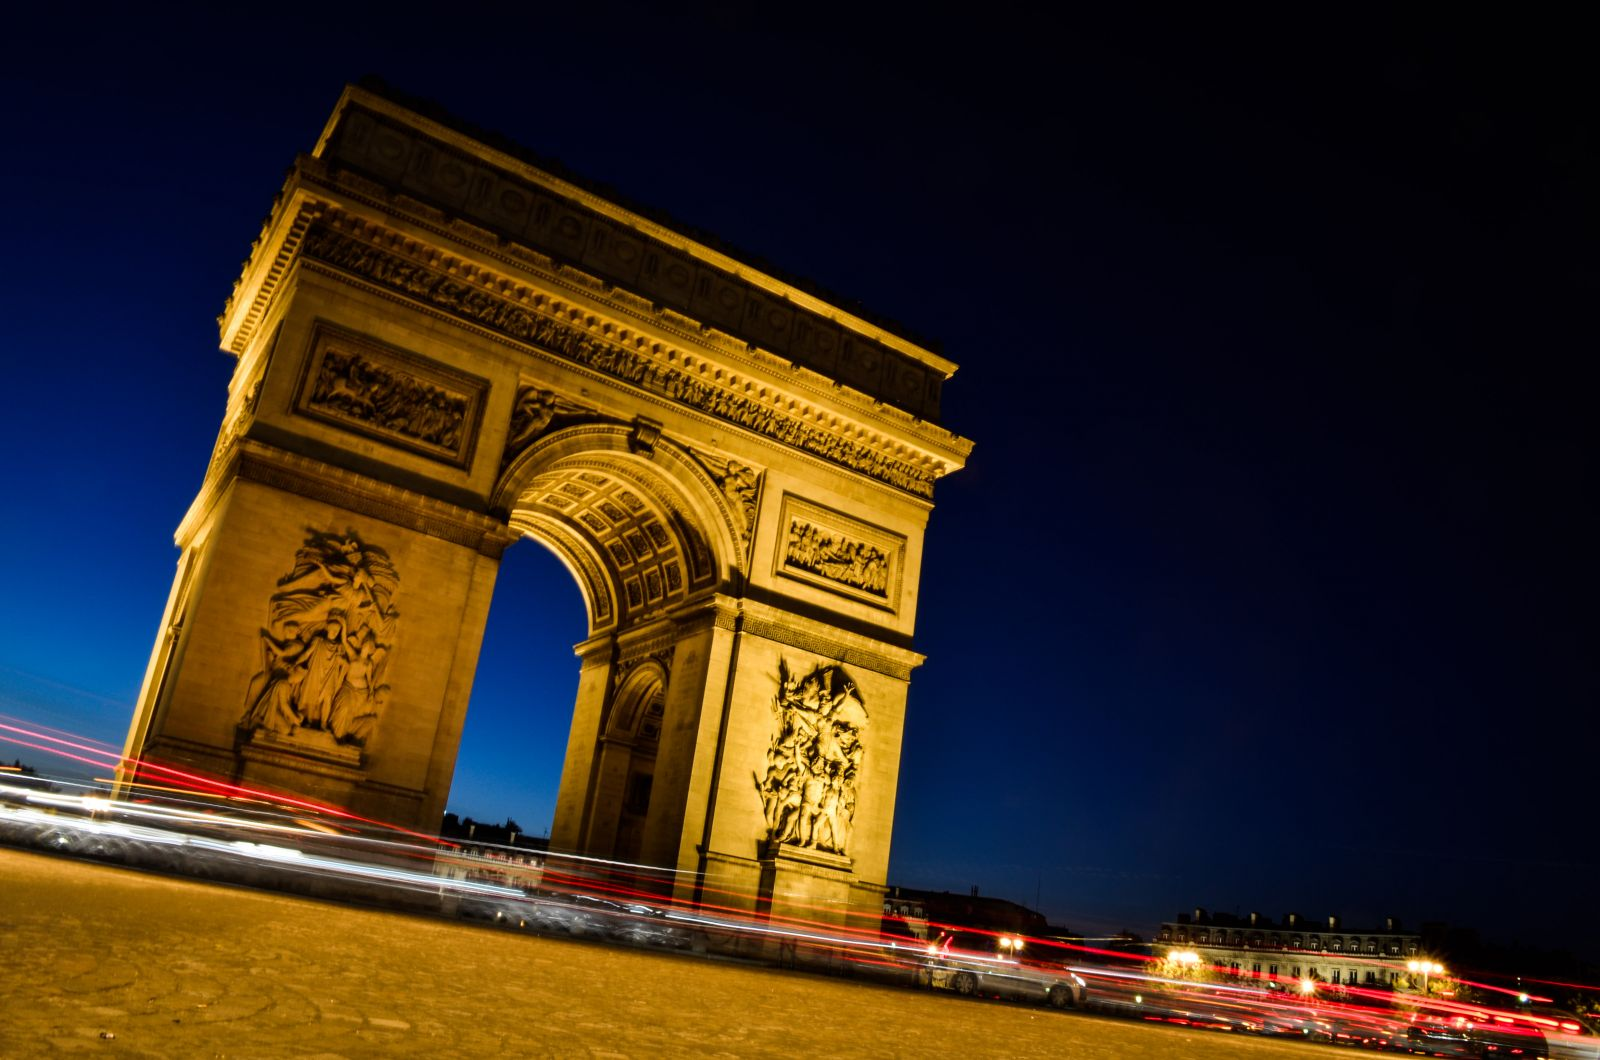 549/Photos/Paris/arc-de-triomphe-nuit.jpg